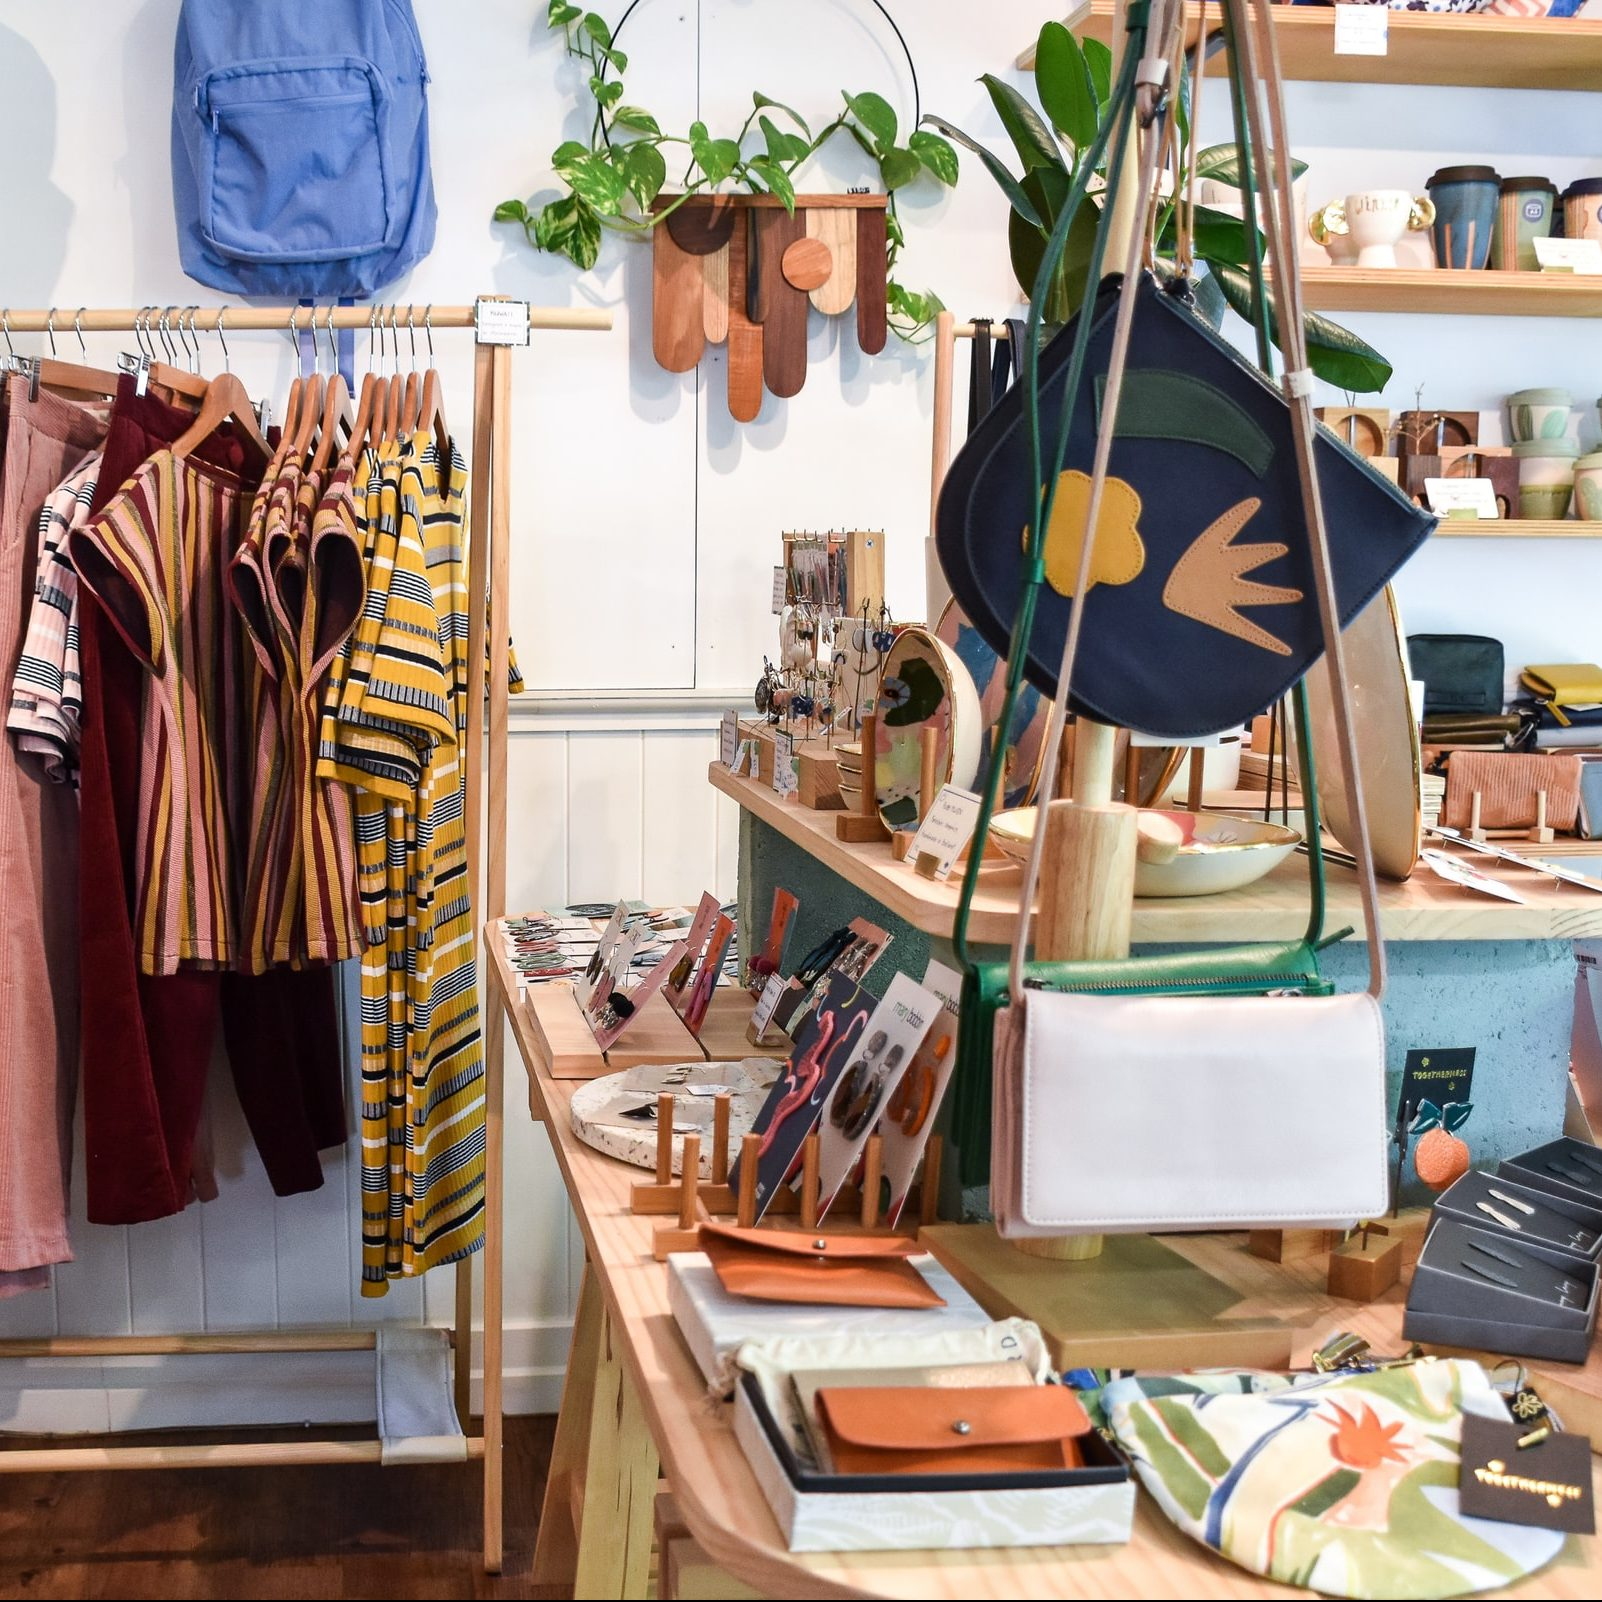 An eclectic mix of ethical clothing and home accessories inside a small shop.